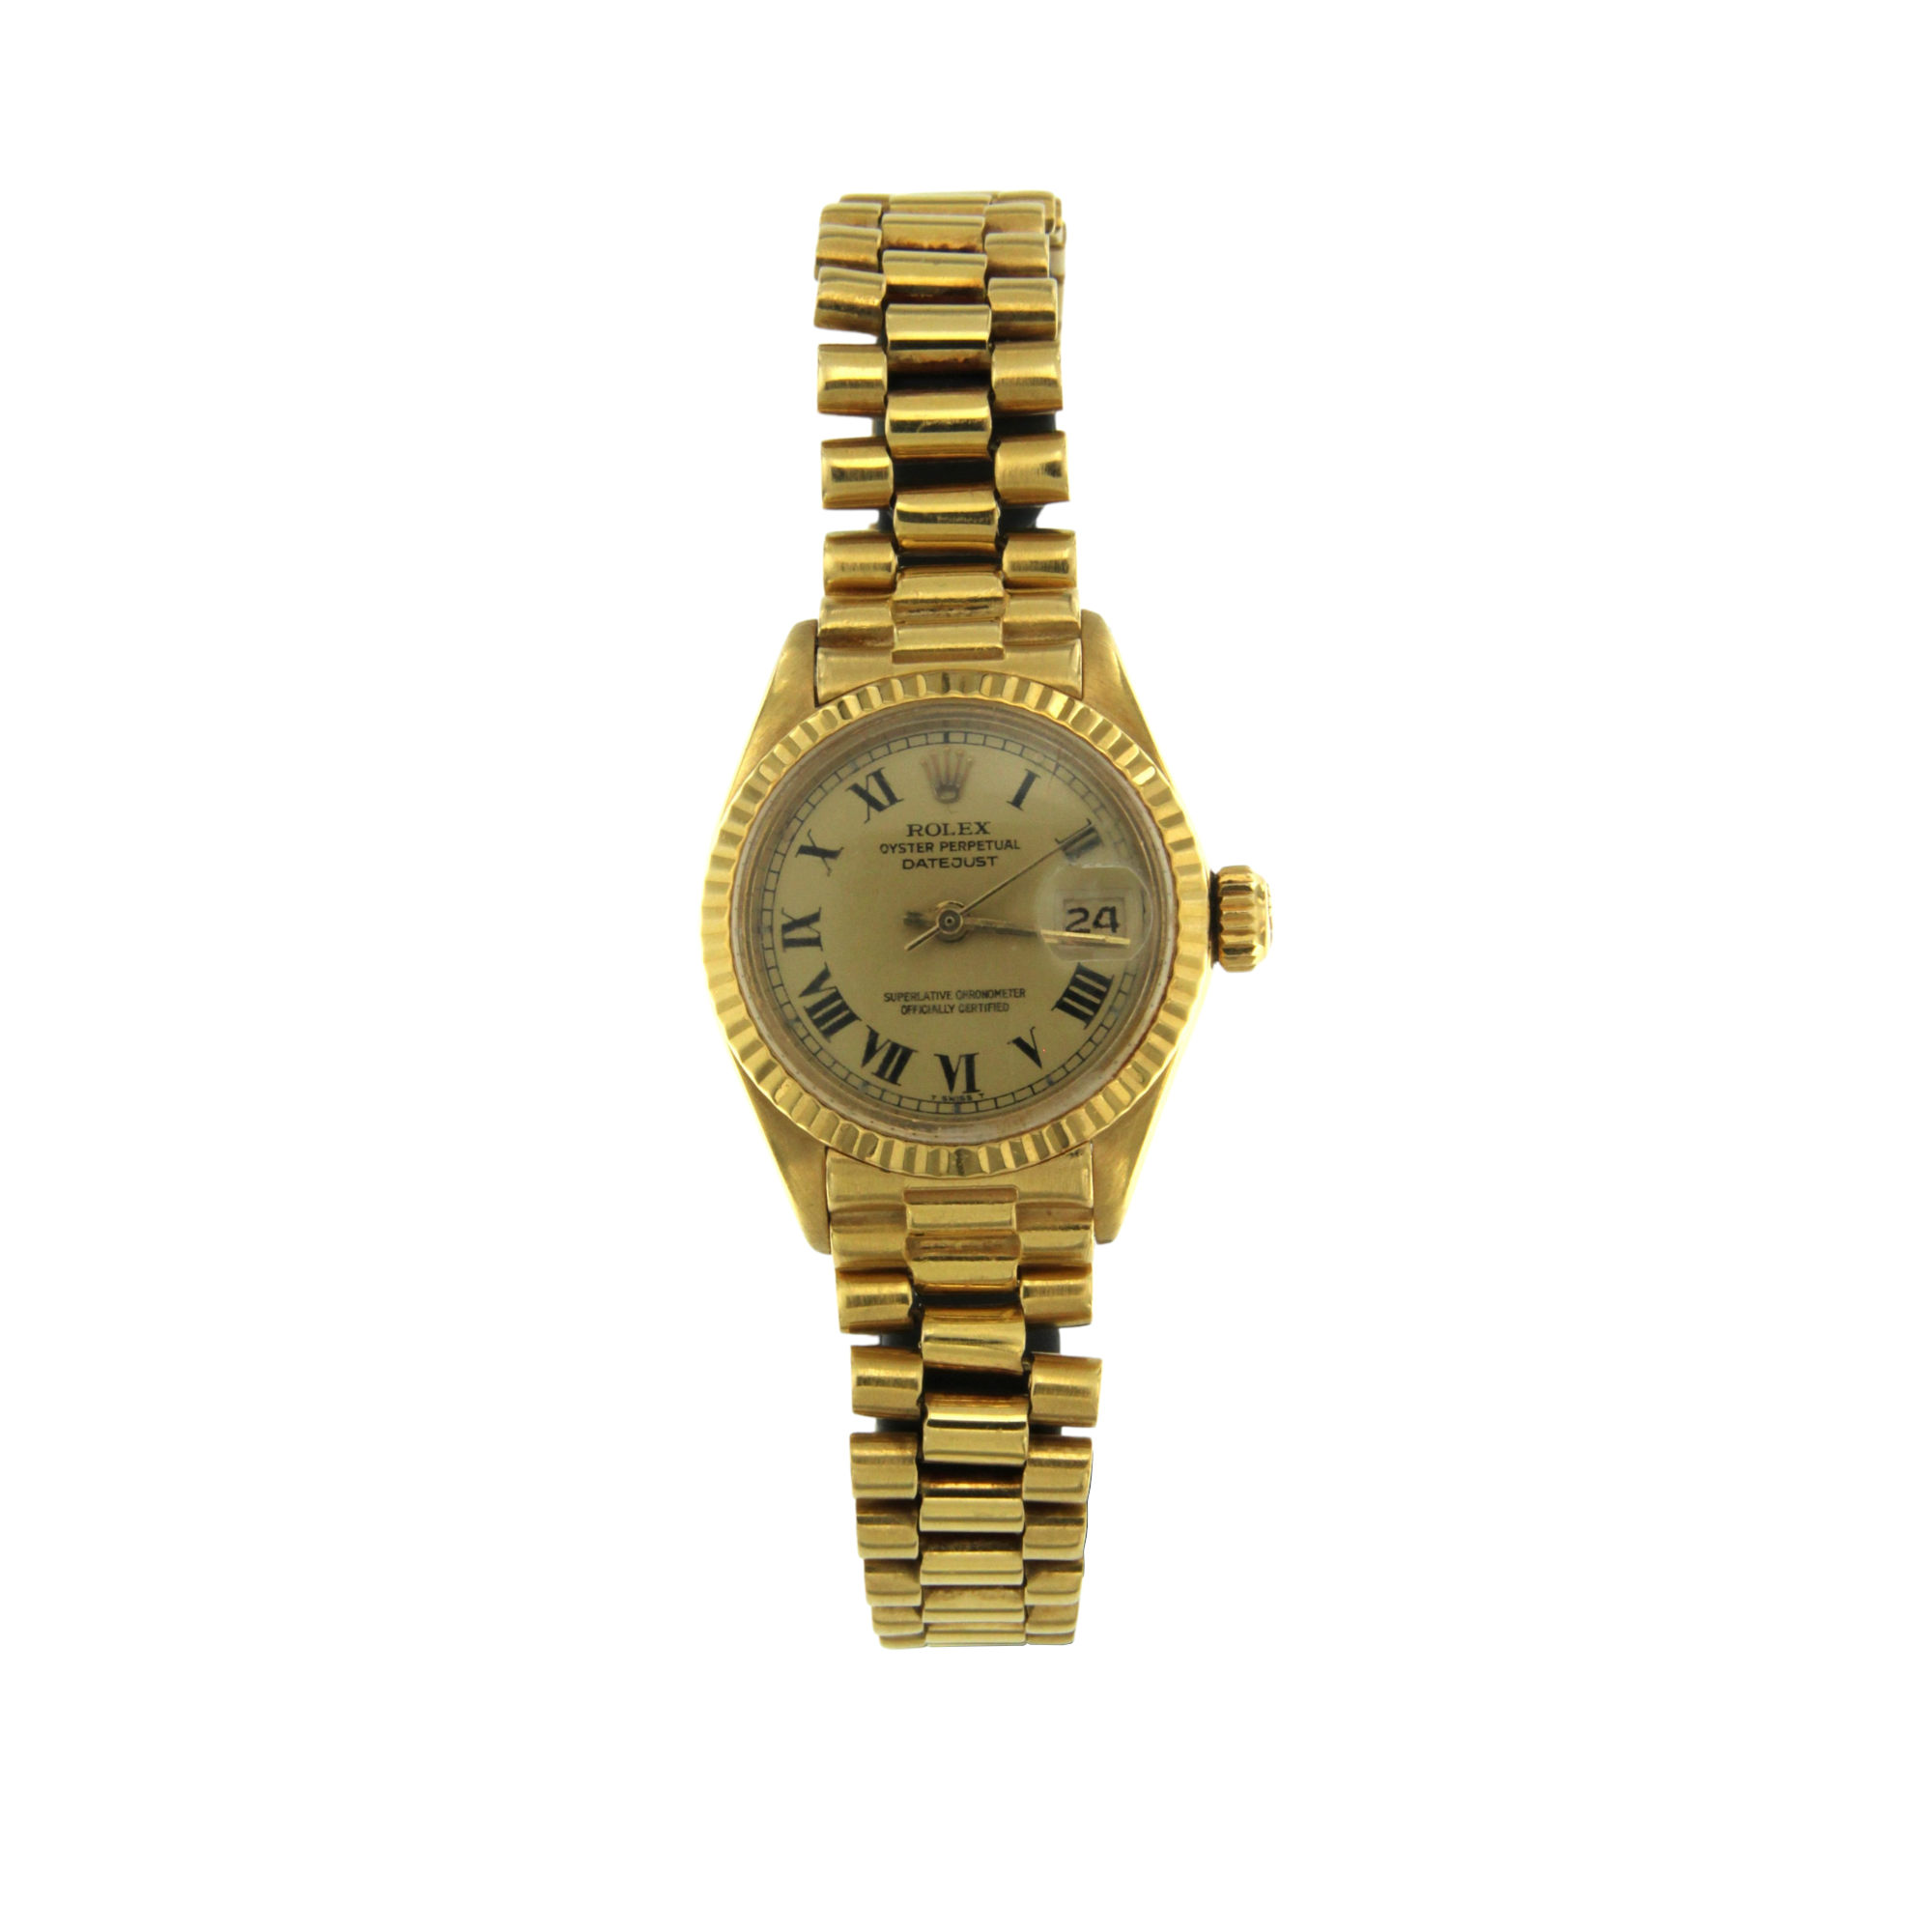 Orologio Rolex Oyster Perpetual Date Just oro giallo 18 ct second wirst watch sconto discount